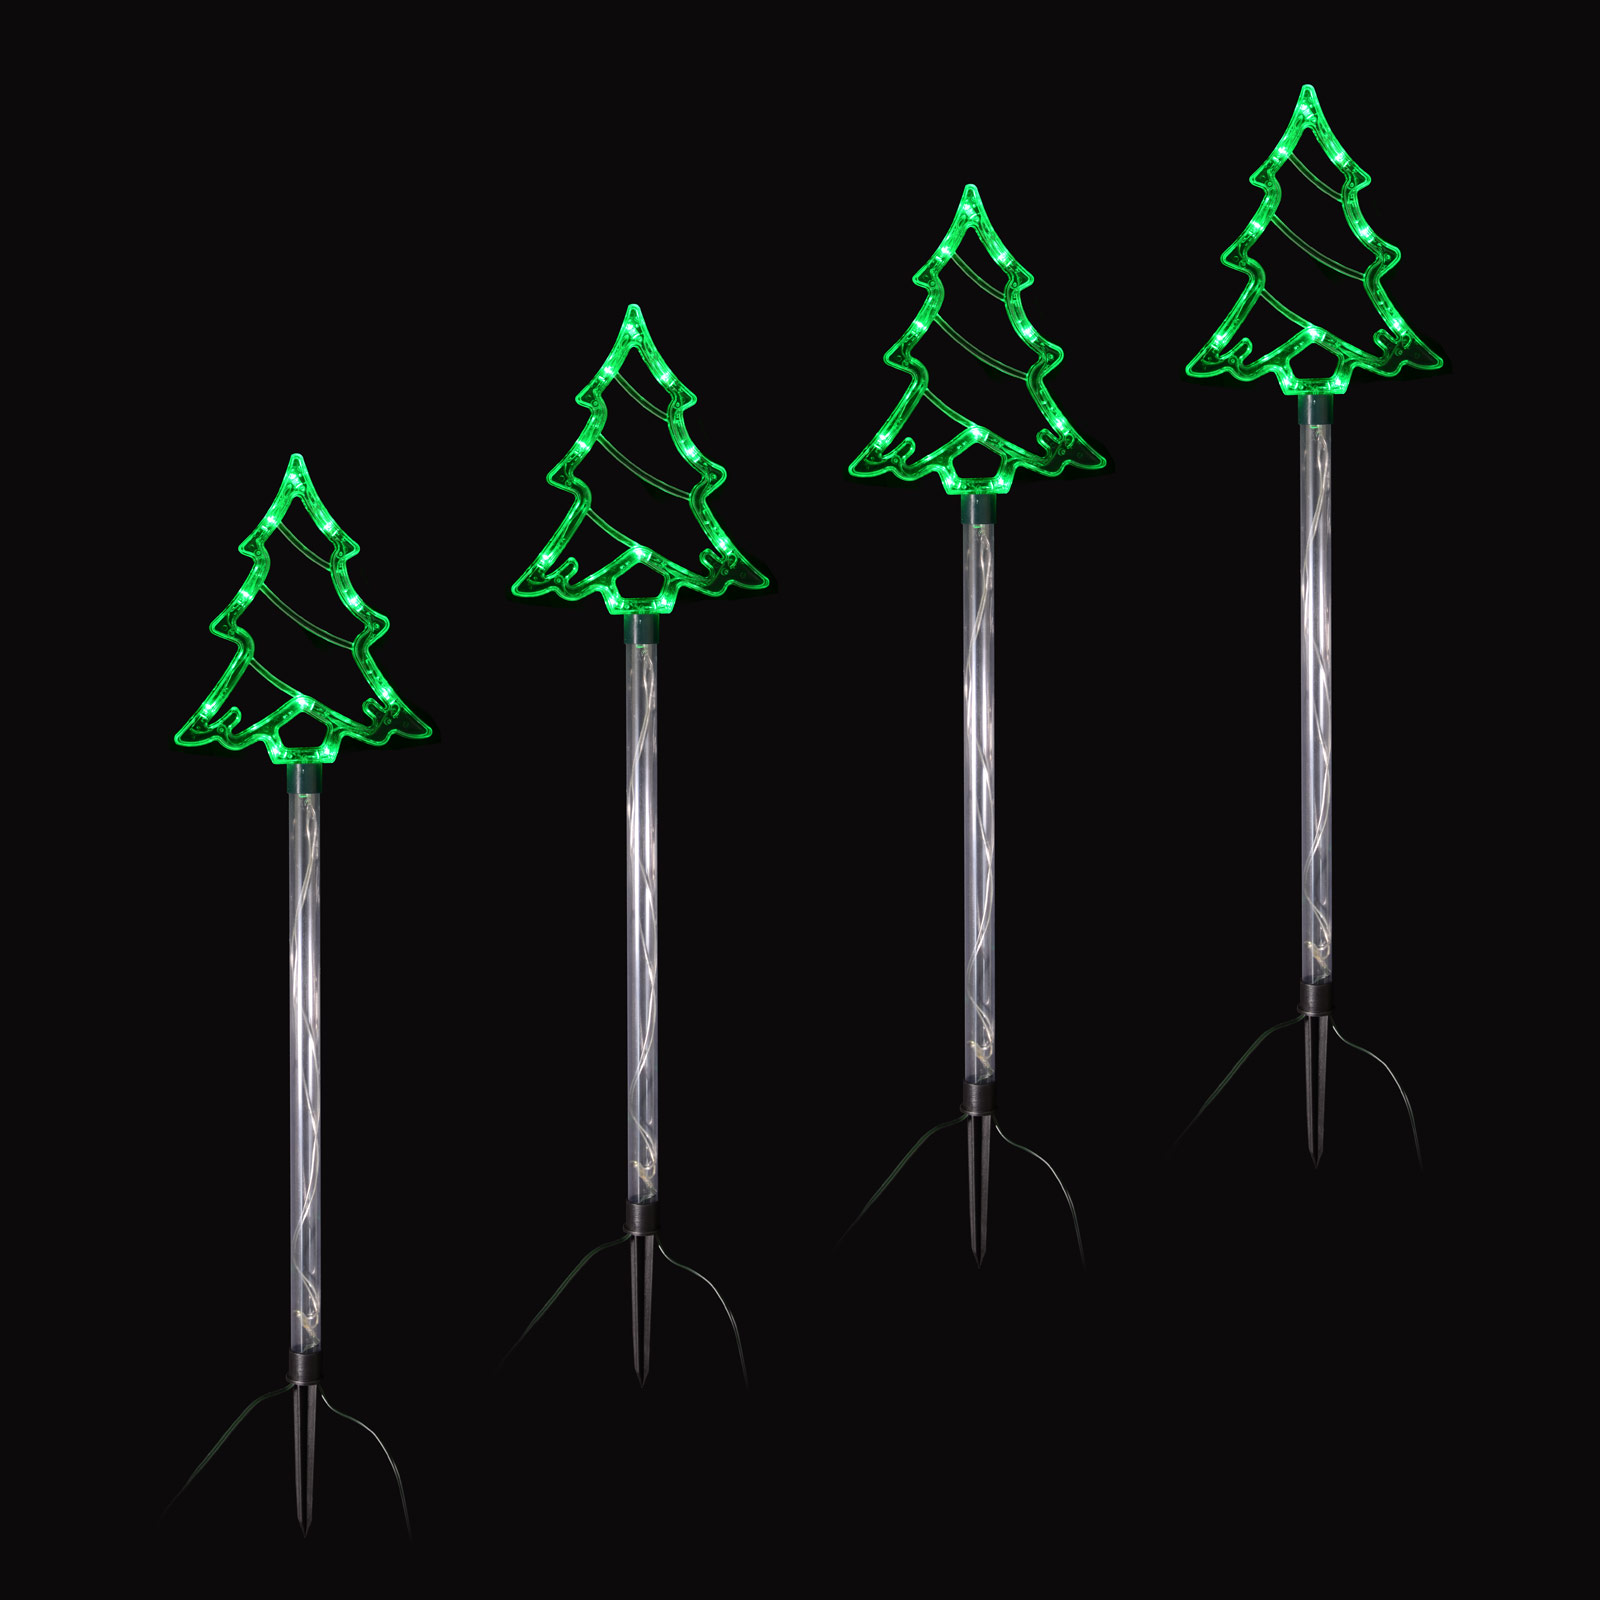 Set Of 4 Linked Crystal Trees Pathway Light Up Outdoors Christmas Decoration